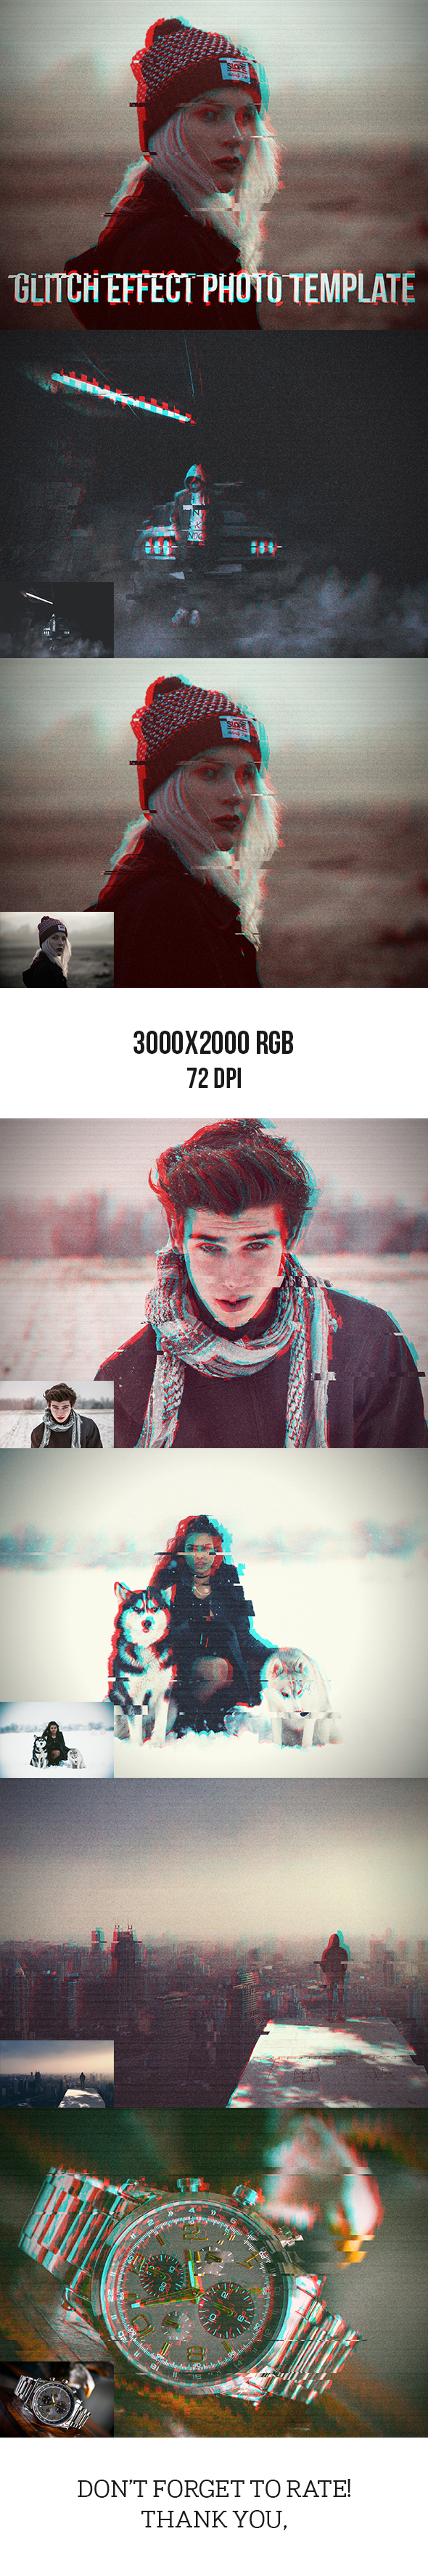 Glitch Effect Photo Template - Photo Effects Actions